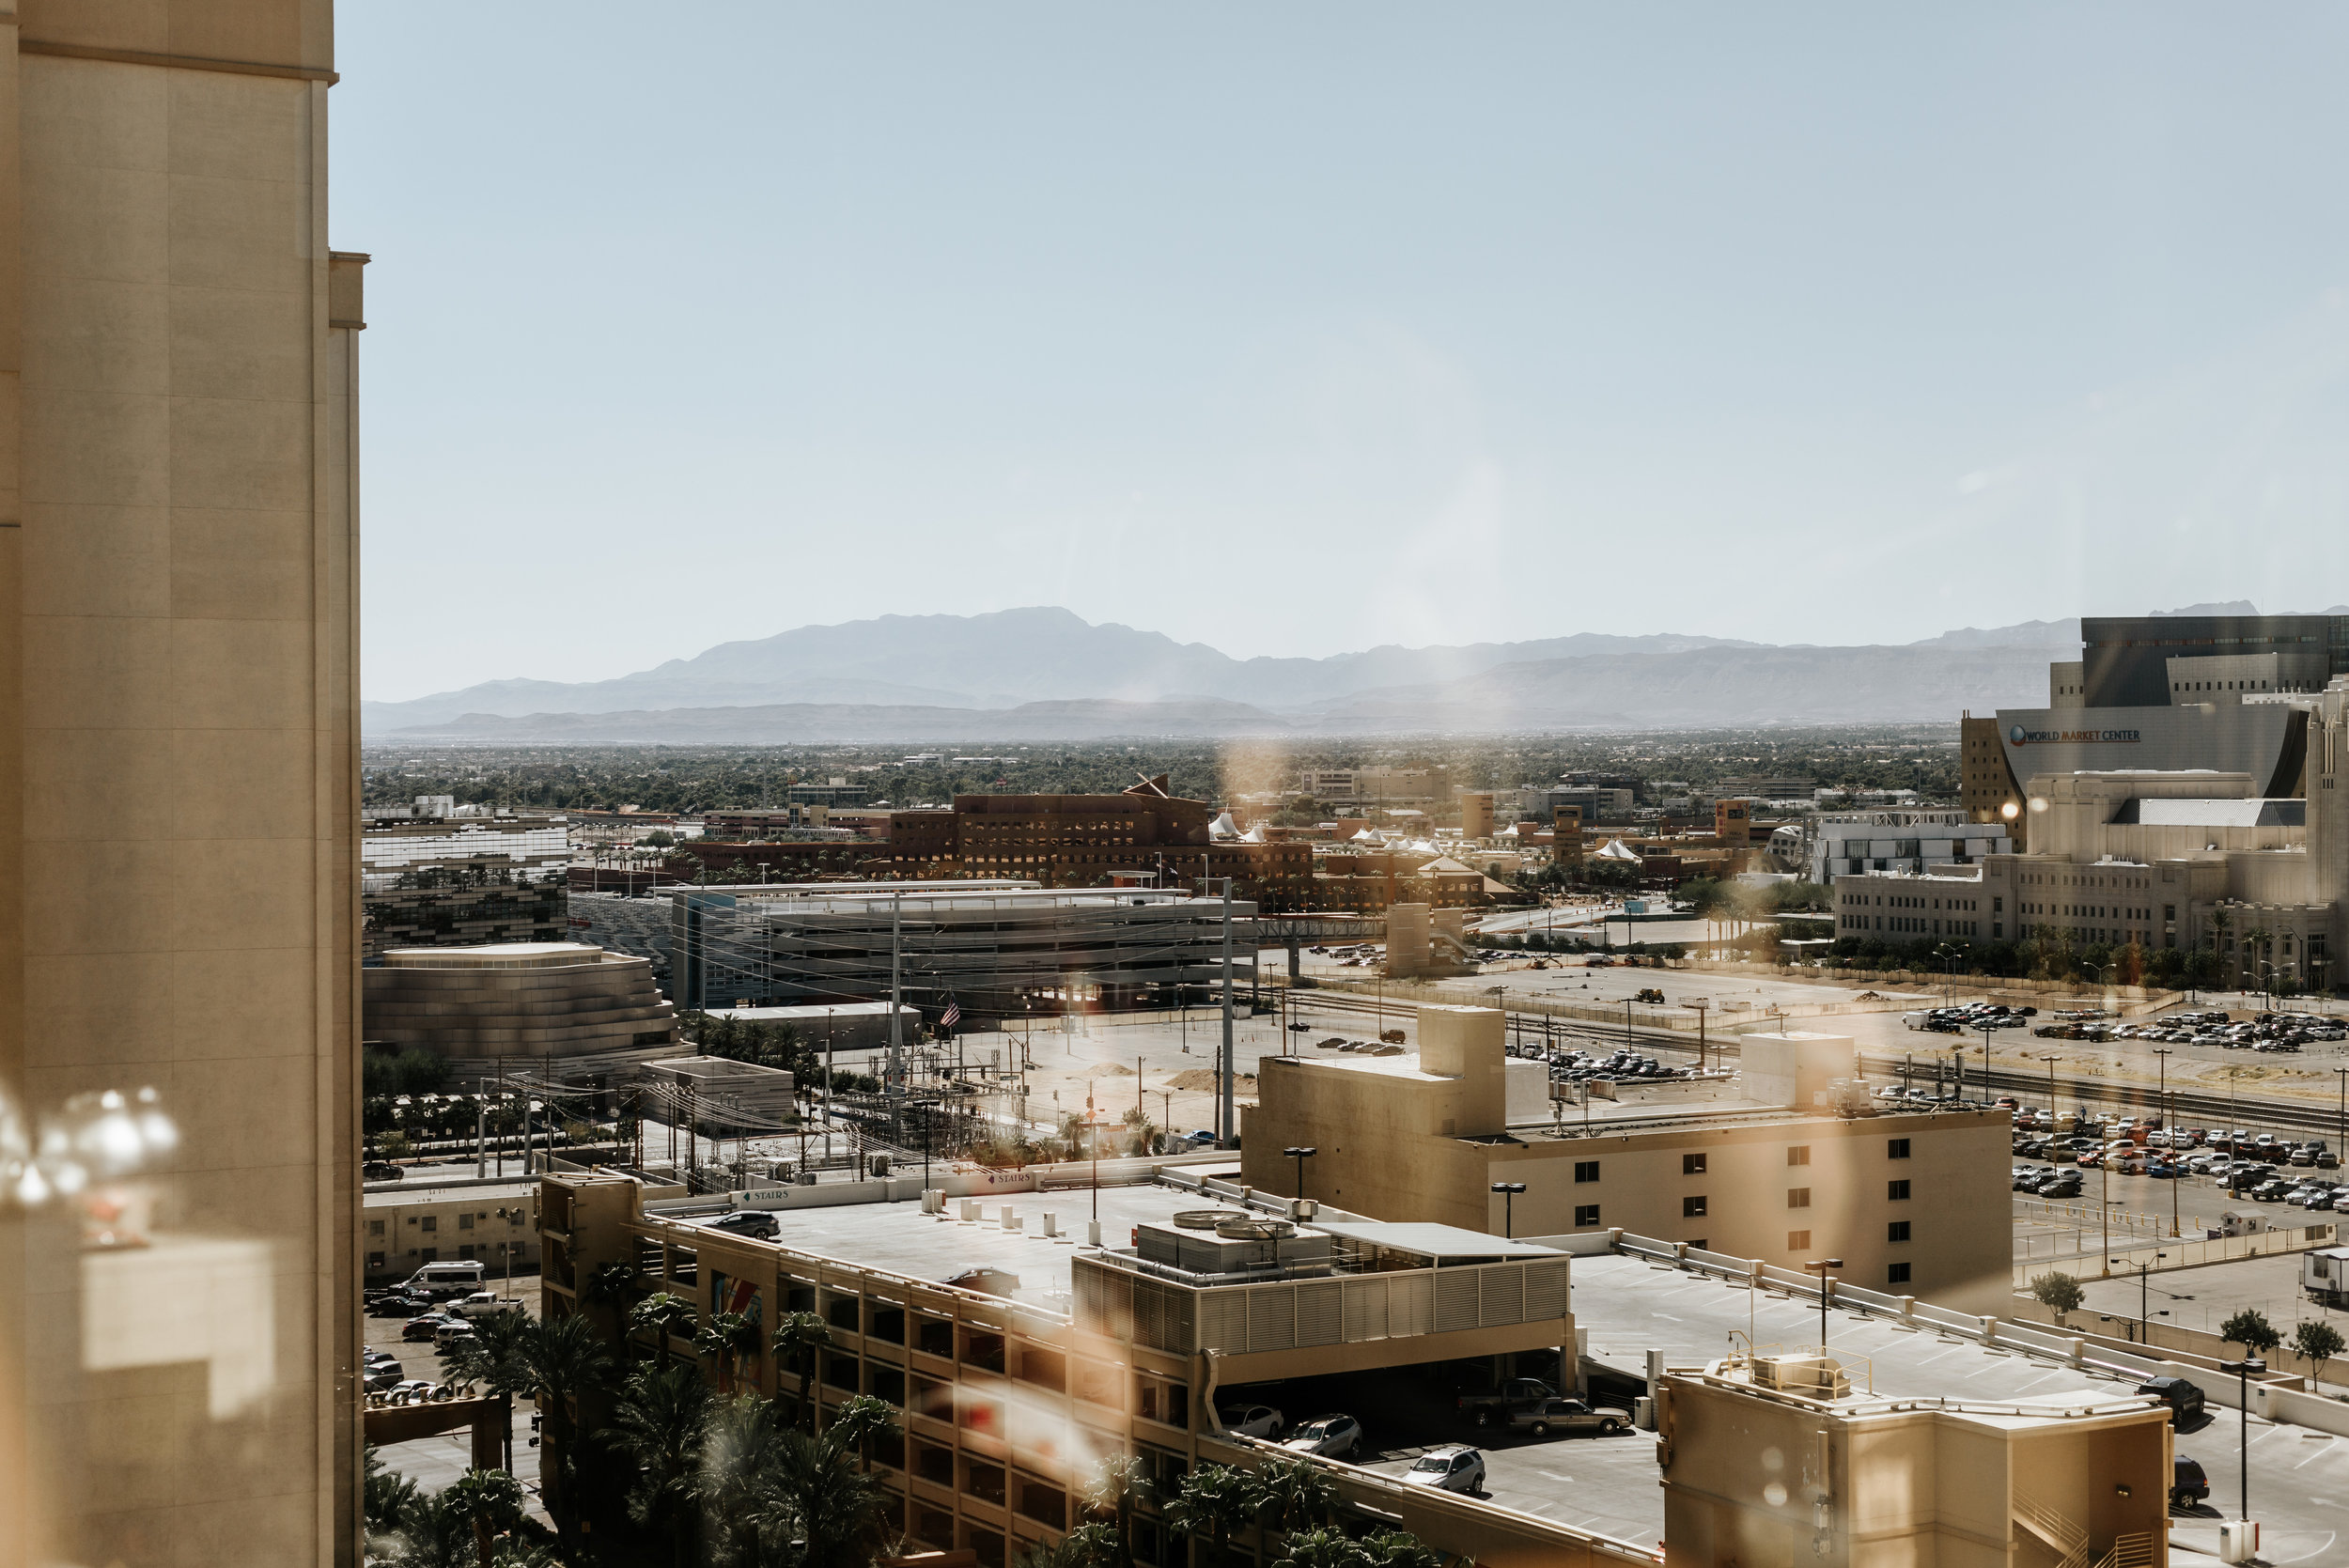 Neon-Museum-Wedding-Las-Vegas-Nevada-Golden-Nugget-Photography-by-V-Ally-and-Dan-6367.jpg